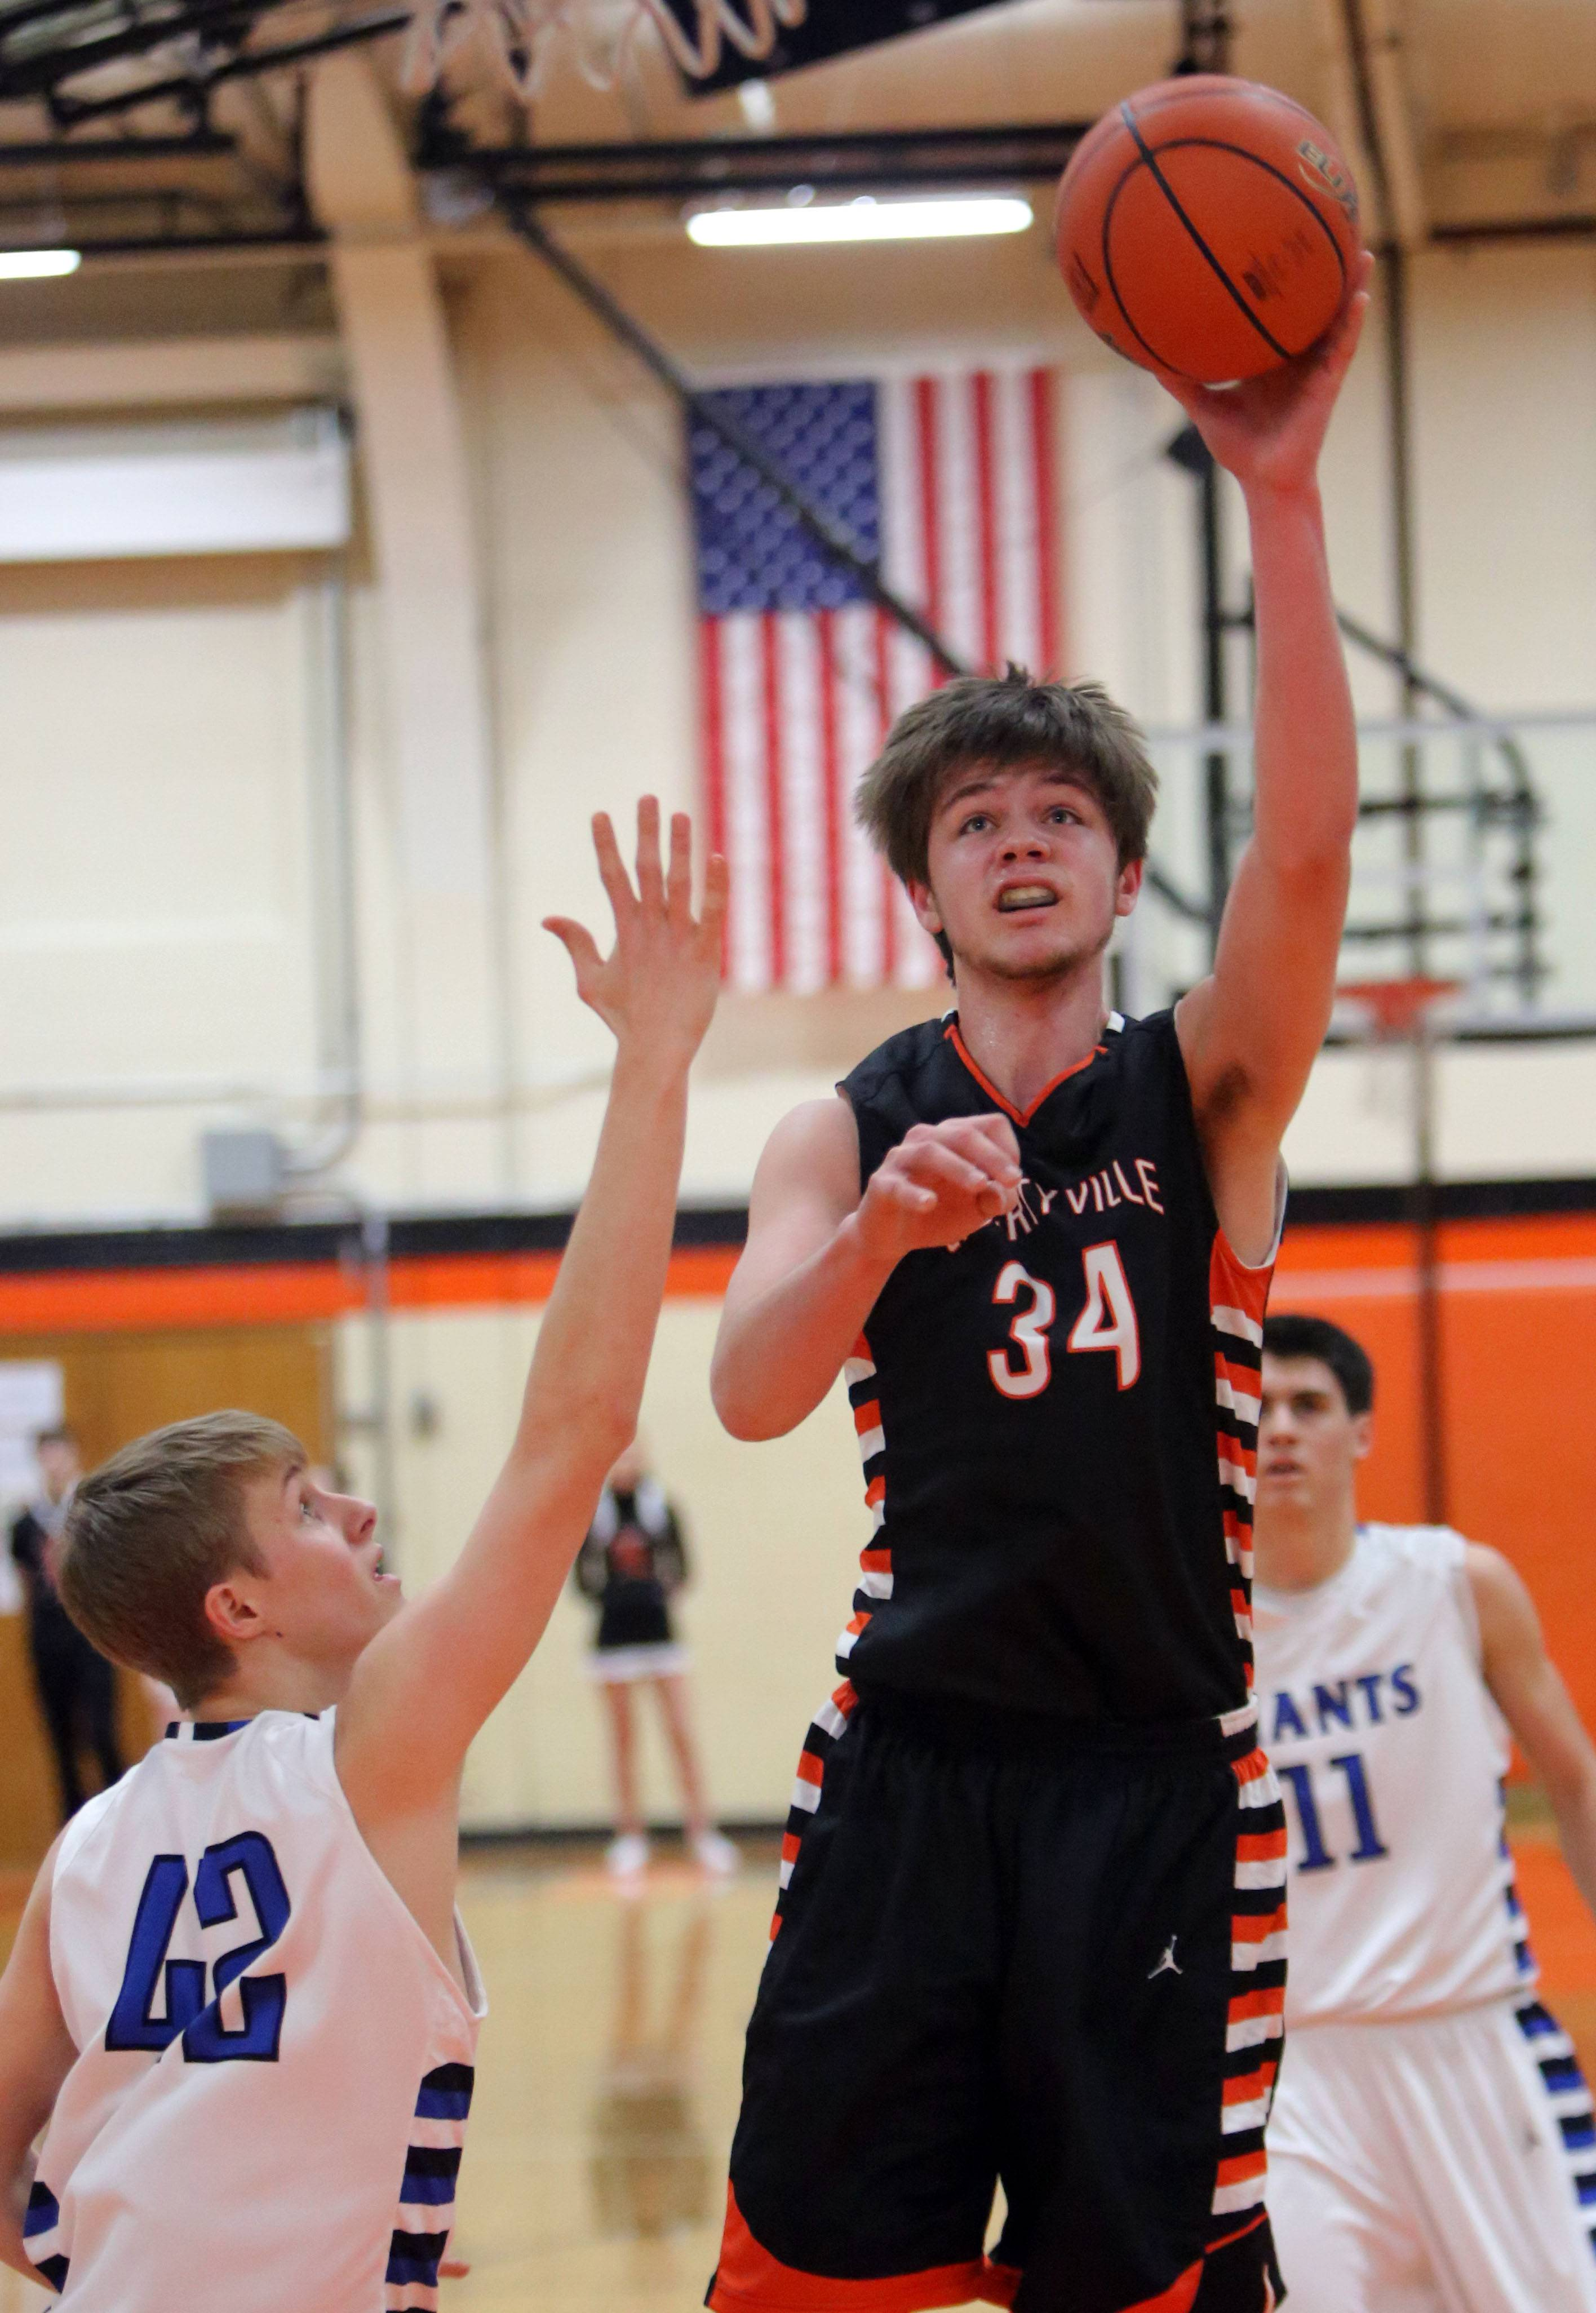 Libertyville's Joe Borcia, right, shoots over Highland Park's Hallvard Lundevall.